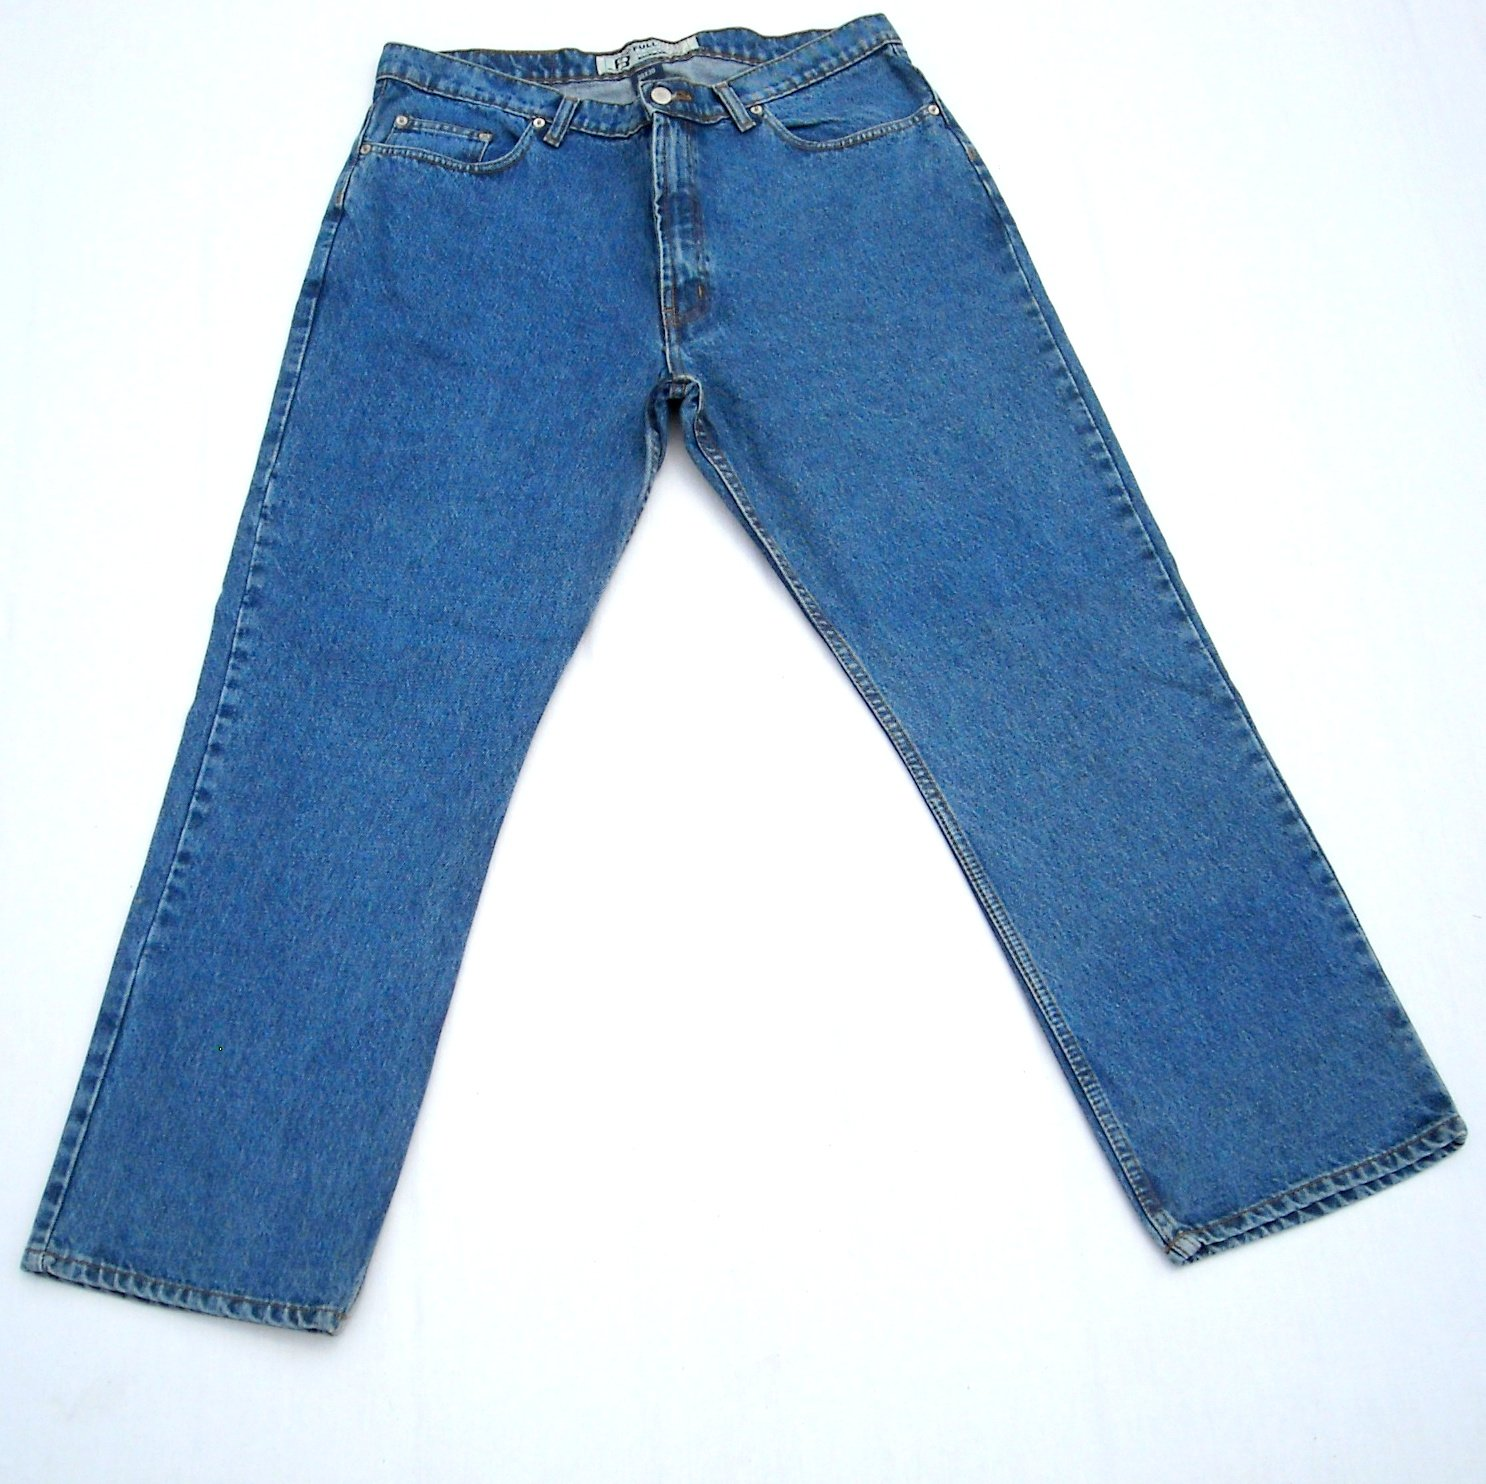 Full Blue Real Quality Work Jeans Used Size 38 X 30